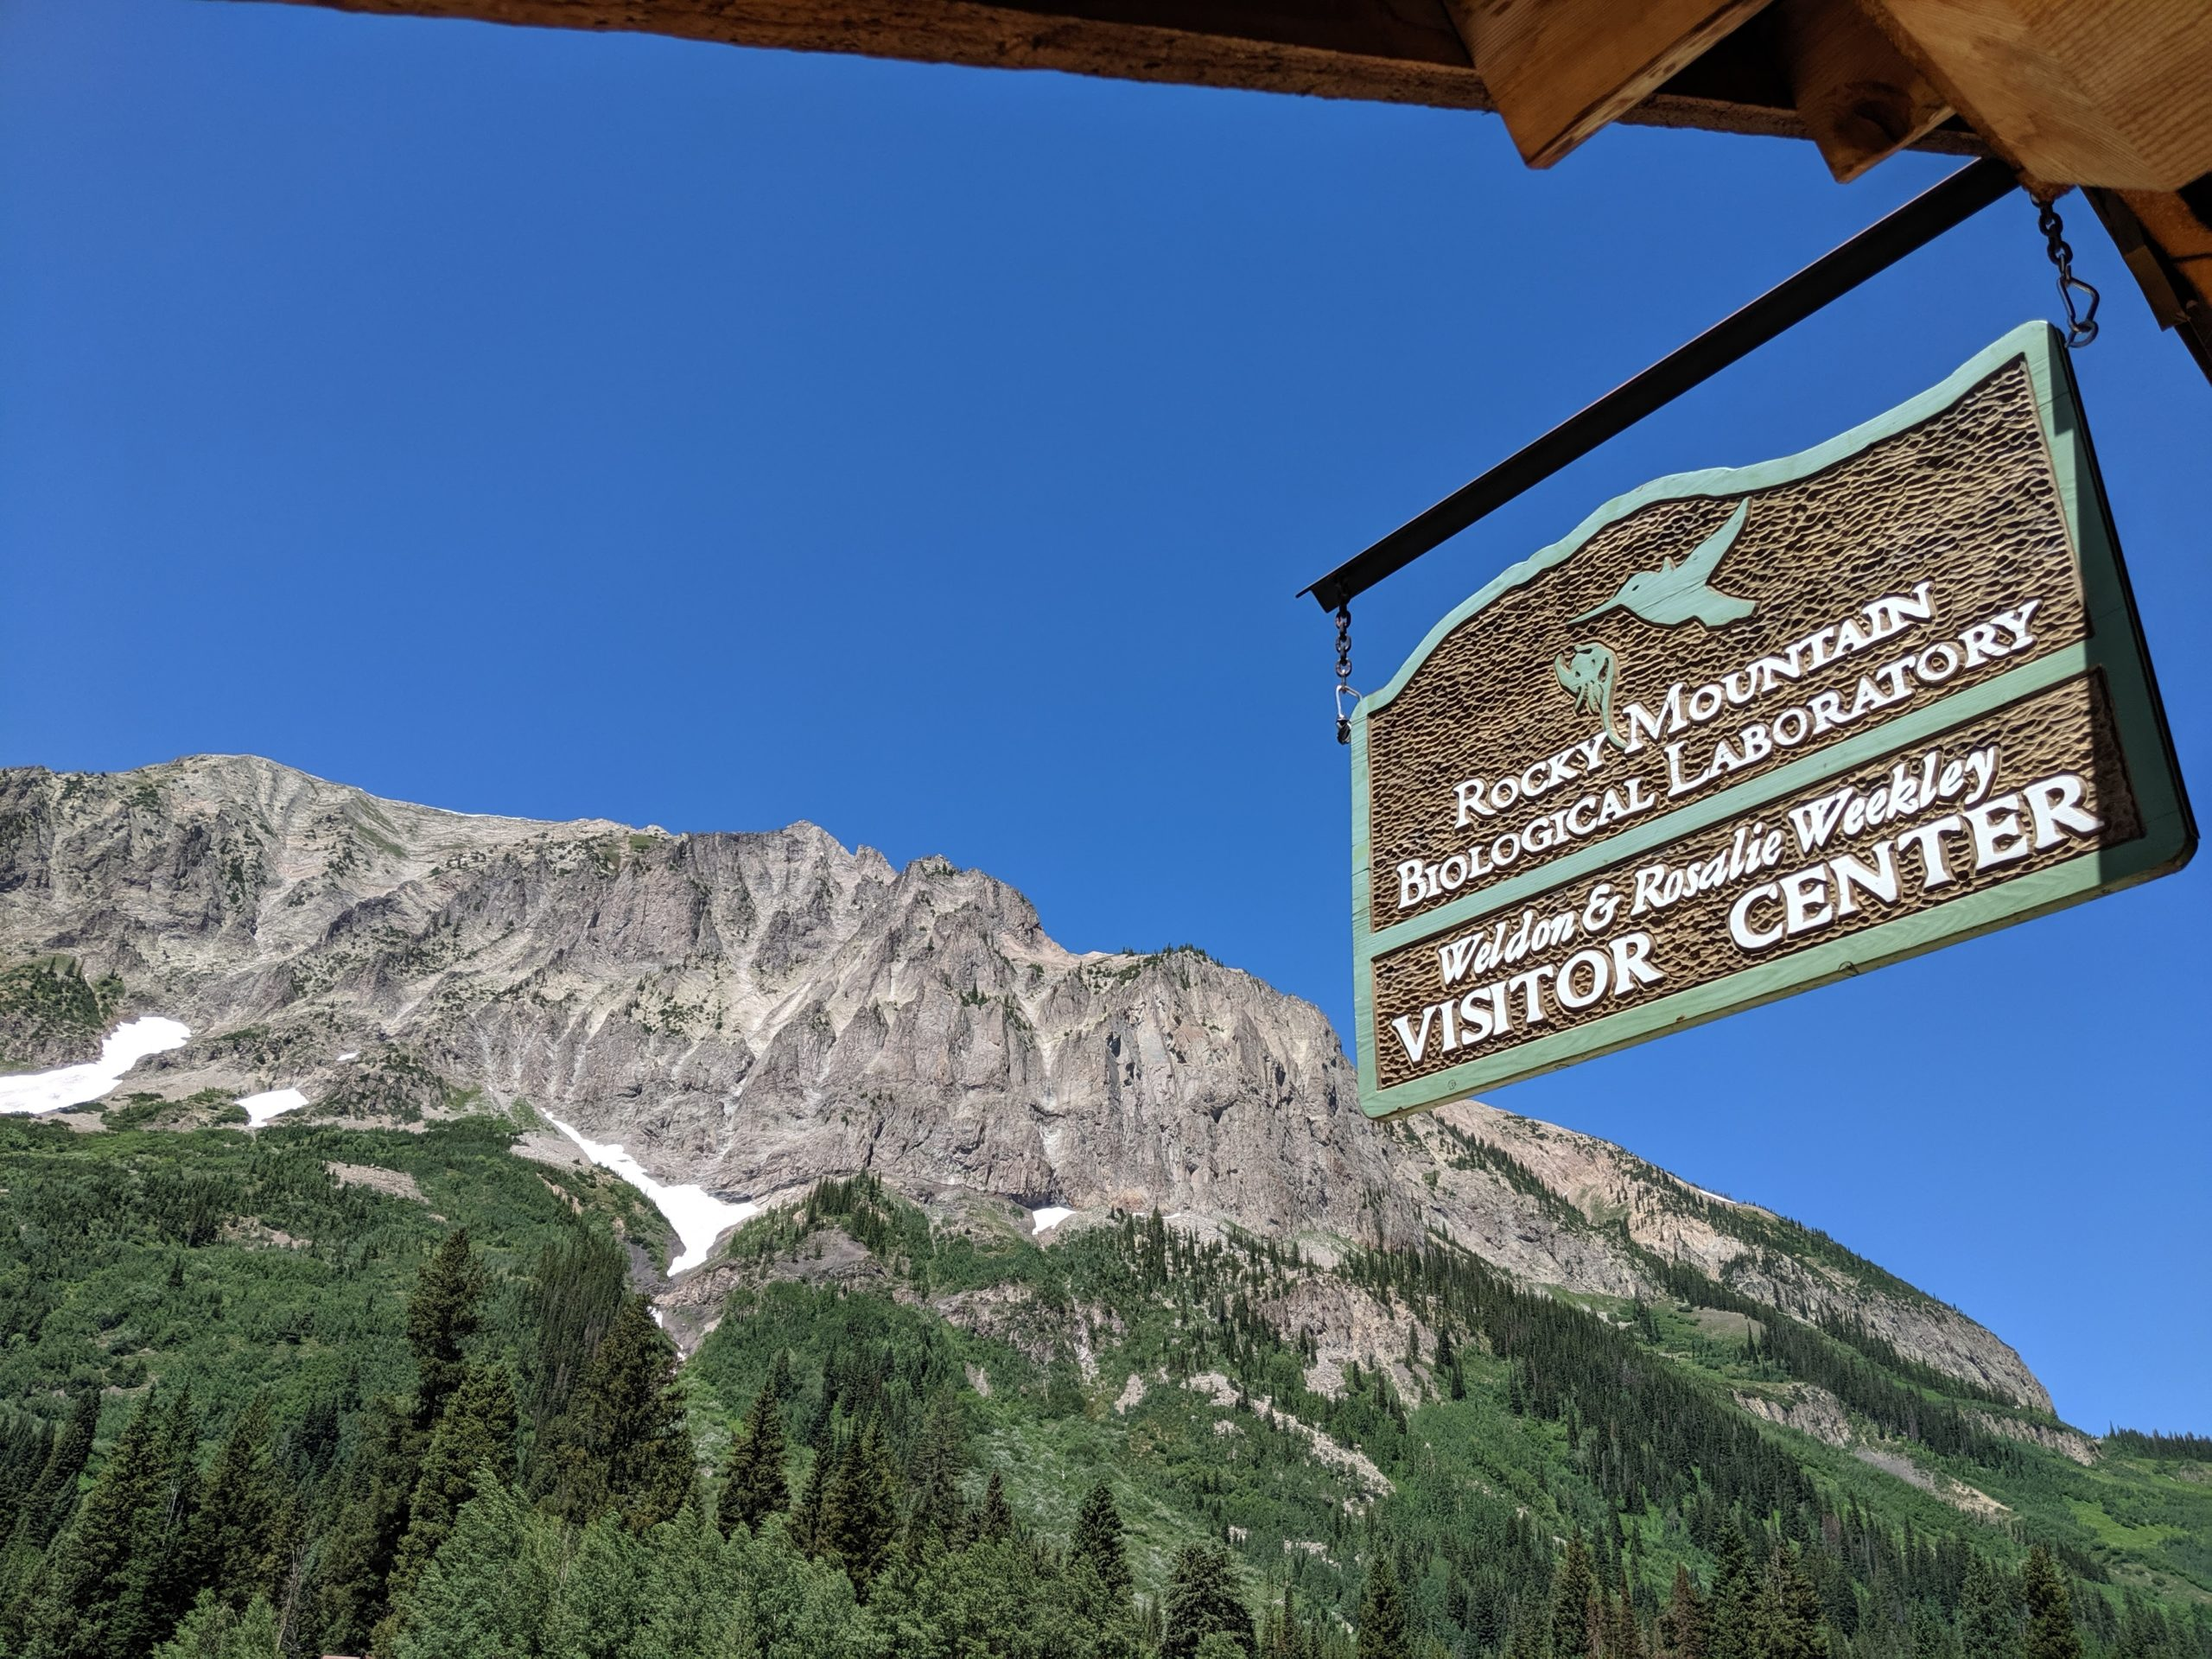 A sign for Rocky Mountain Biological Laboratory's visitor center in Gothic, Colo.